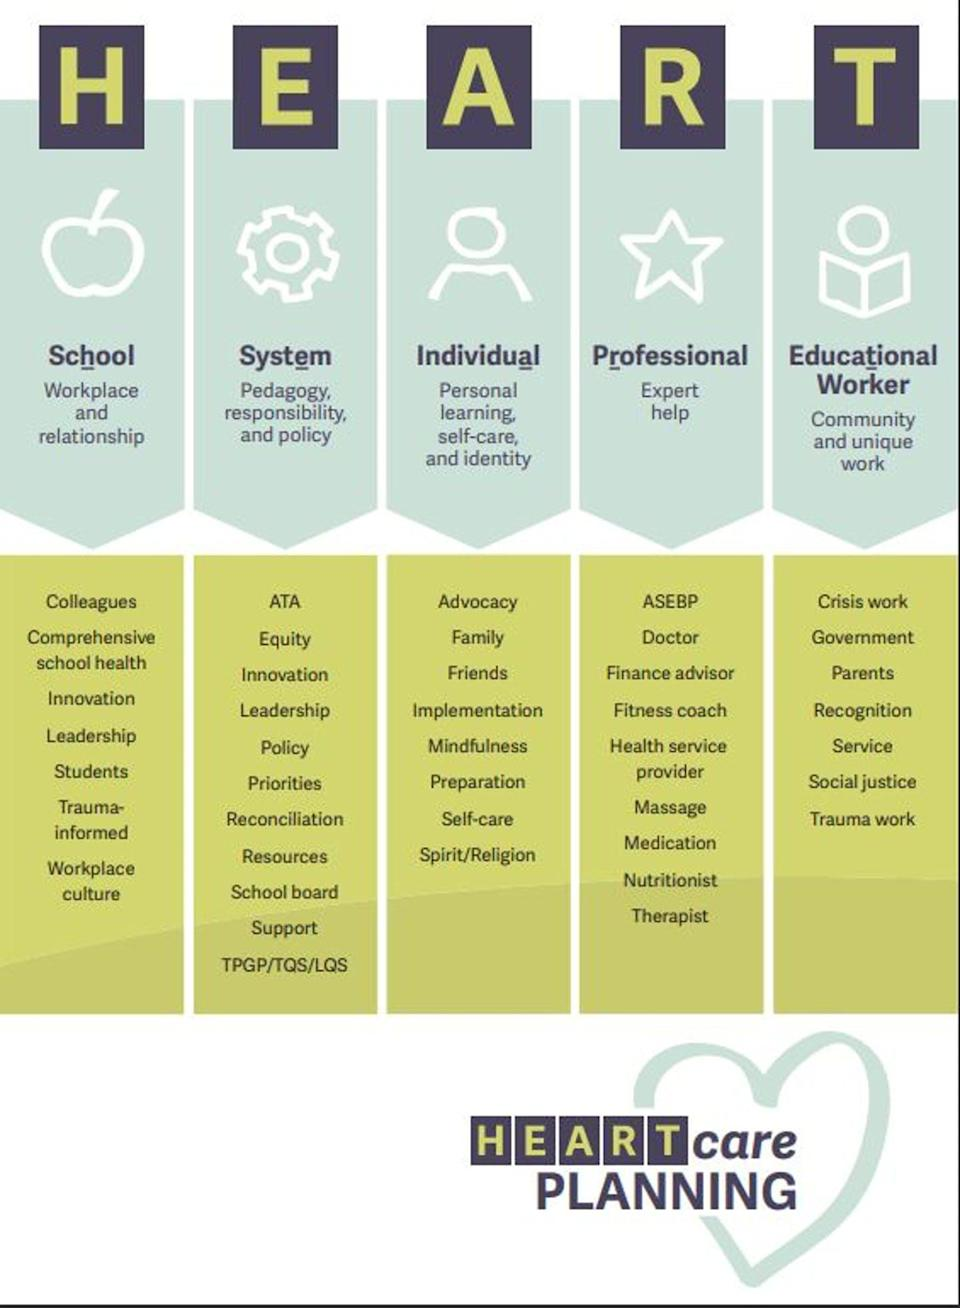 """<span class=""""caption"""">Responding to educator burnout requires responses that consider comprehensive school health and policy as well as supporting individuals and strengthening educational worker communities.</span> <span class=""""attribution""""><span class=""""source"""">Astrid Kendrick and Alberta Teachers Assocation</span></span>"""